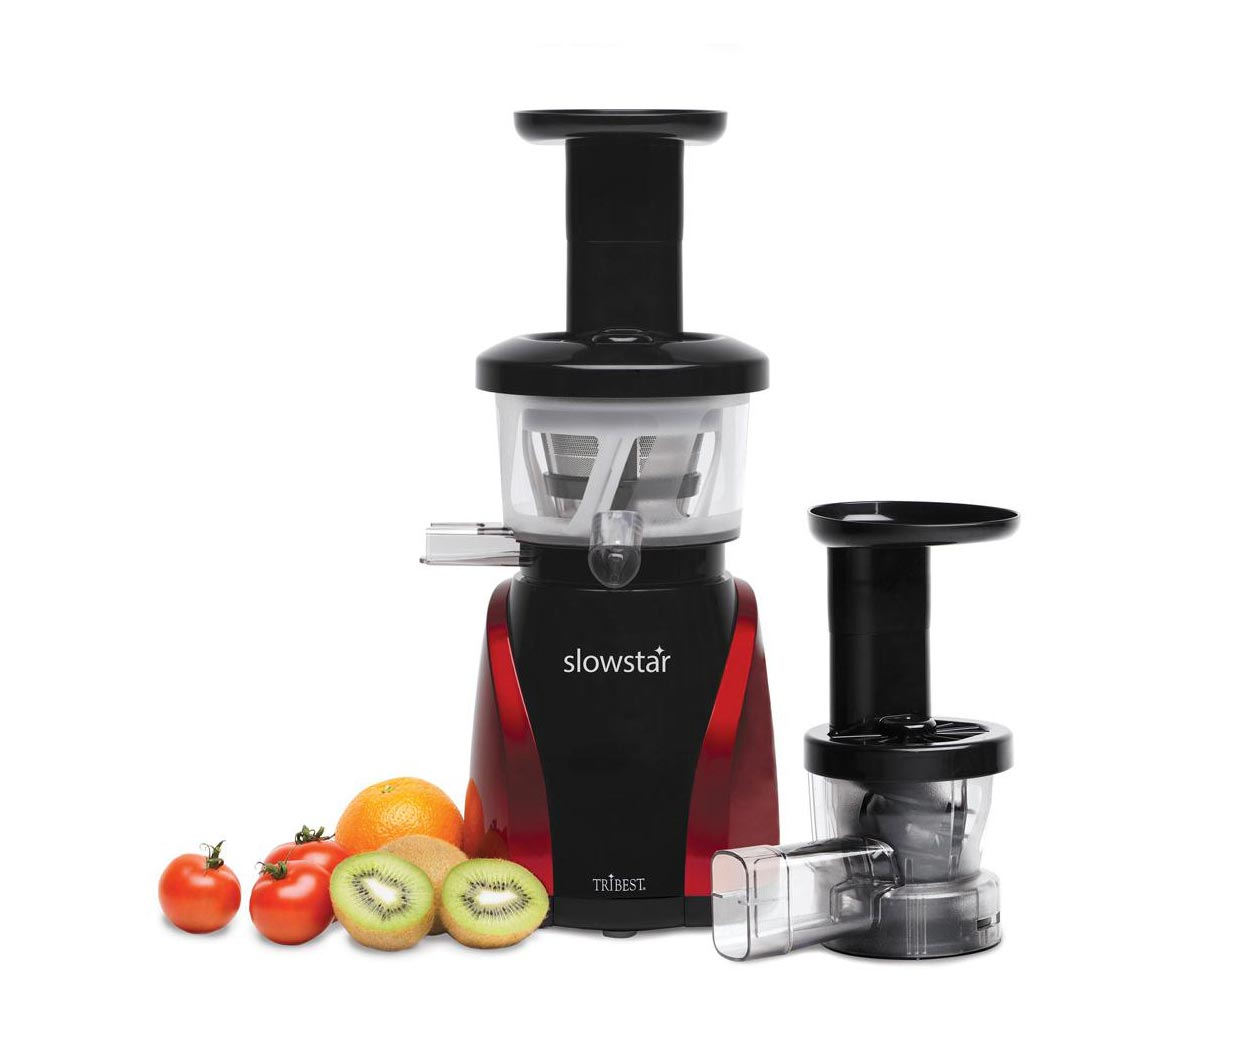 Magic Slow Juicer Review : Tribest Slowstar Juicer Review. Is this Tribest juicer the best juicer to buy?